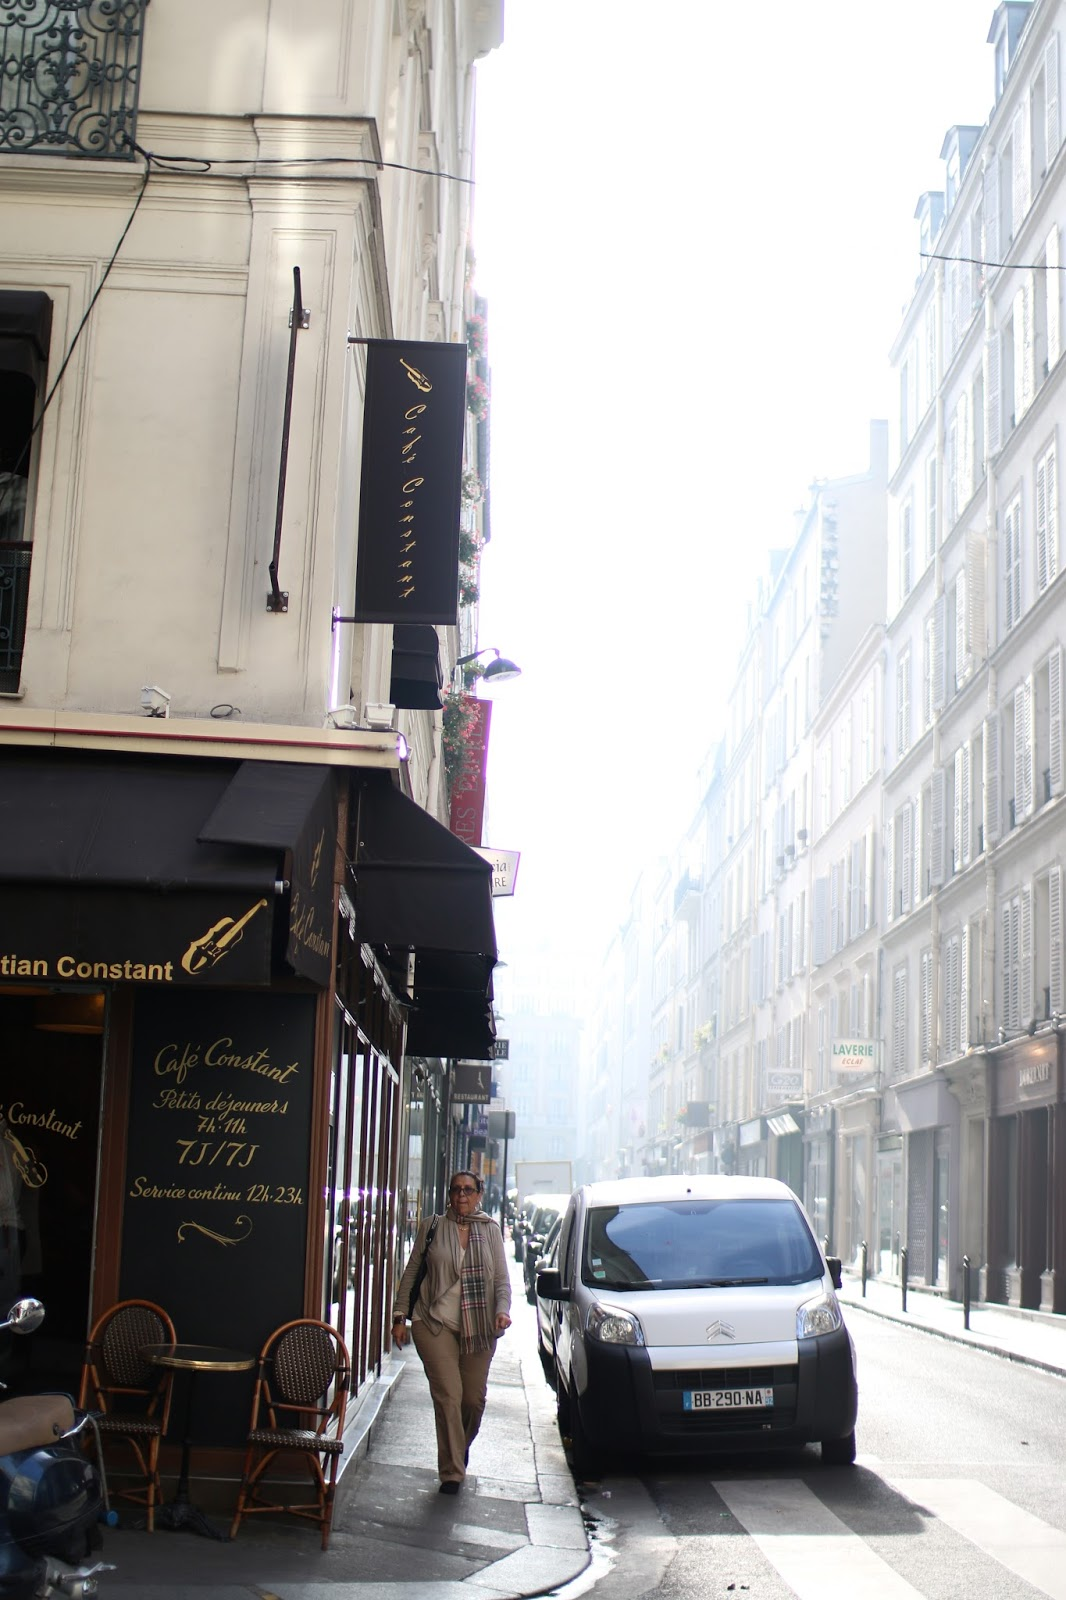 blowy light shining between the buildings in paris, photos of paris